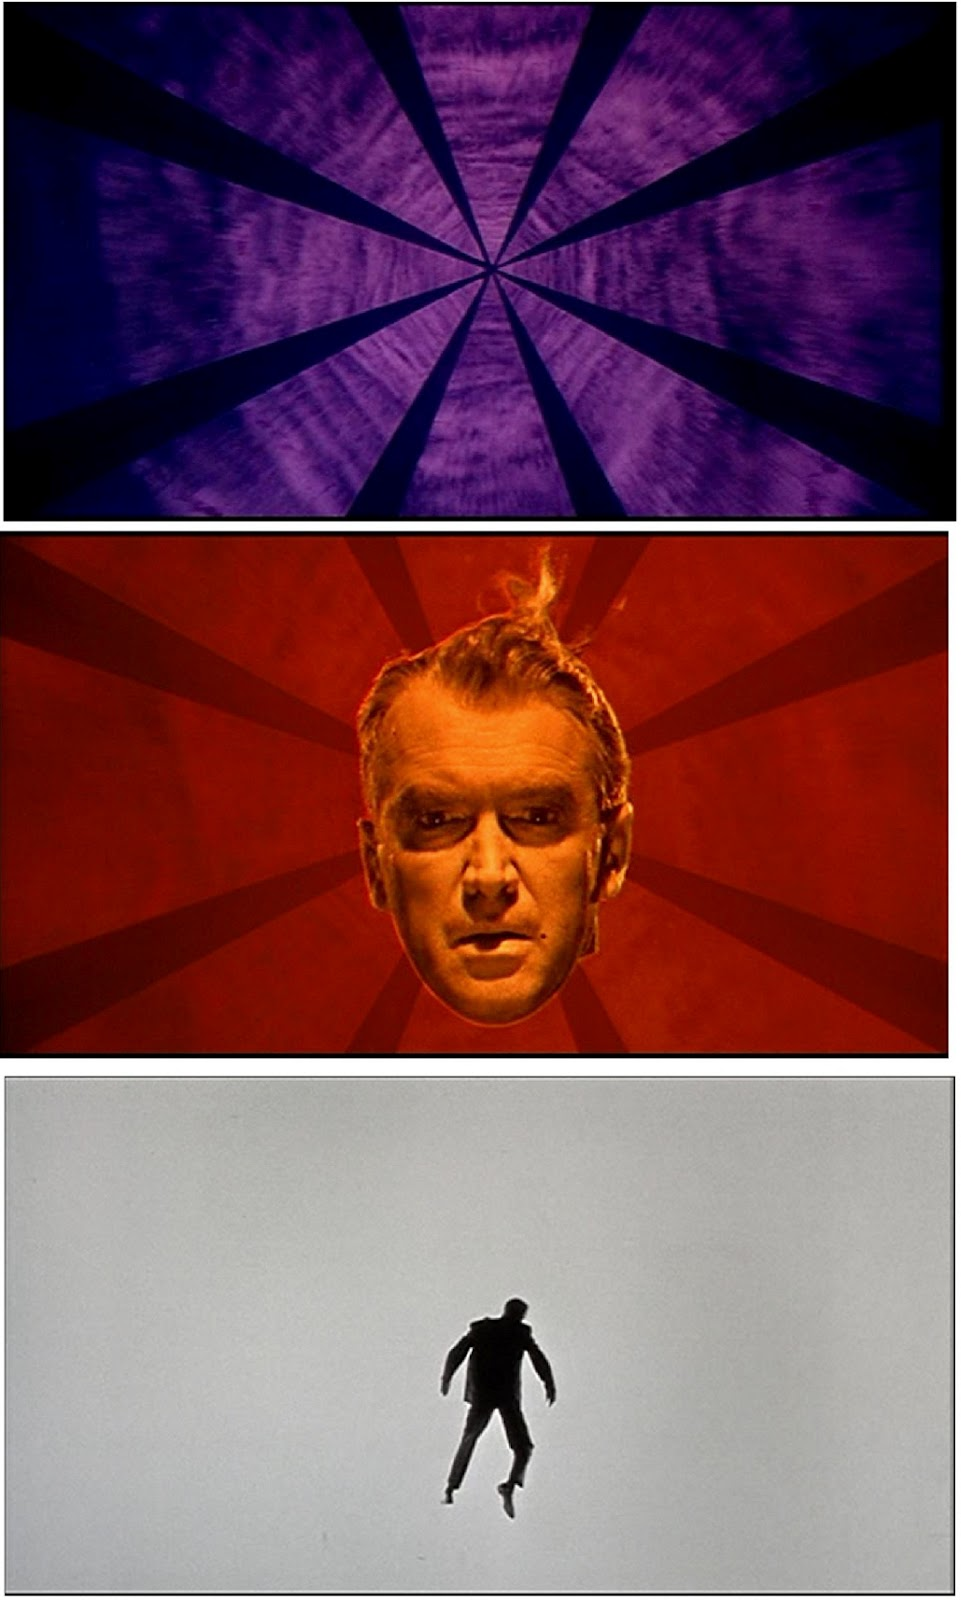 camera work in vertigo by hitchcock It wasn't until i saw the tippi hedren/alfred hitchcock biopic the girl(2012) the absolute precision of the camera work by dp burks is mind blowing the long and winding road of my obsession with hitchcock's vertigo actually began with my seeing brian de palma's obsession.